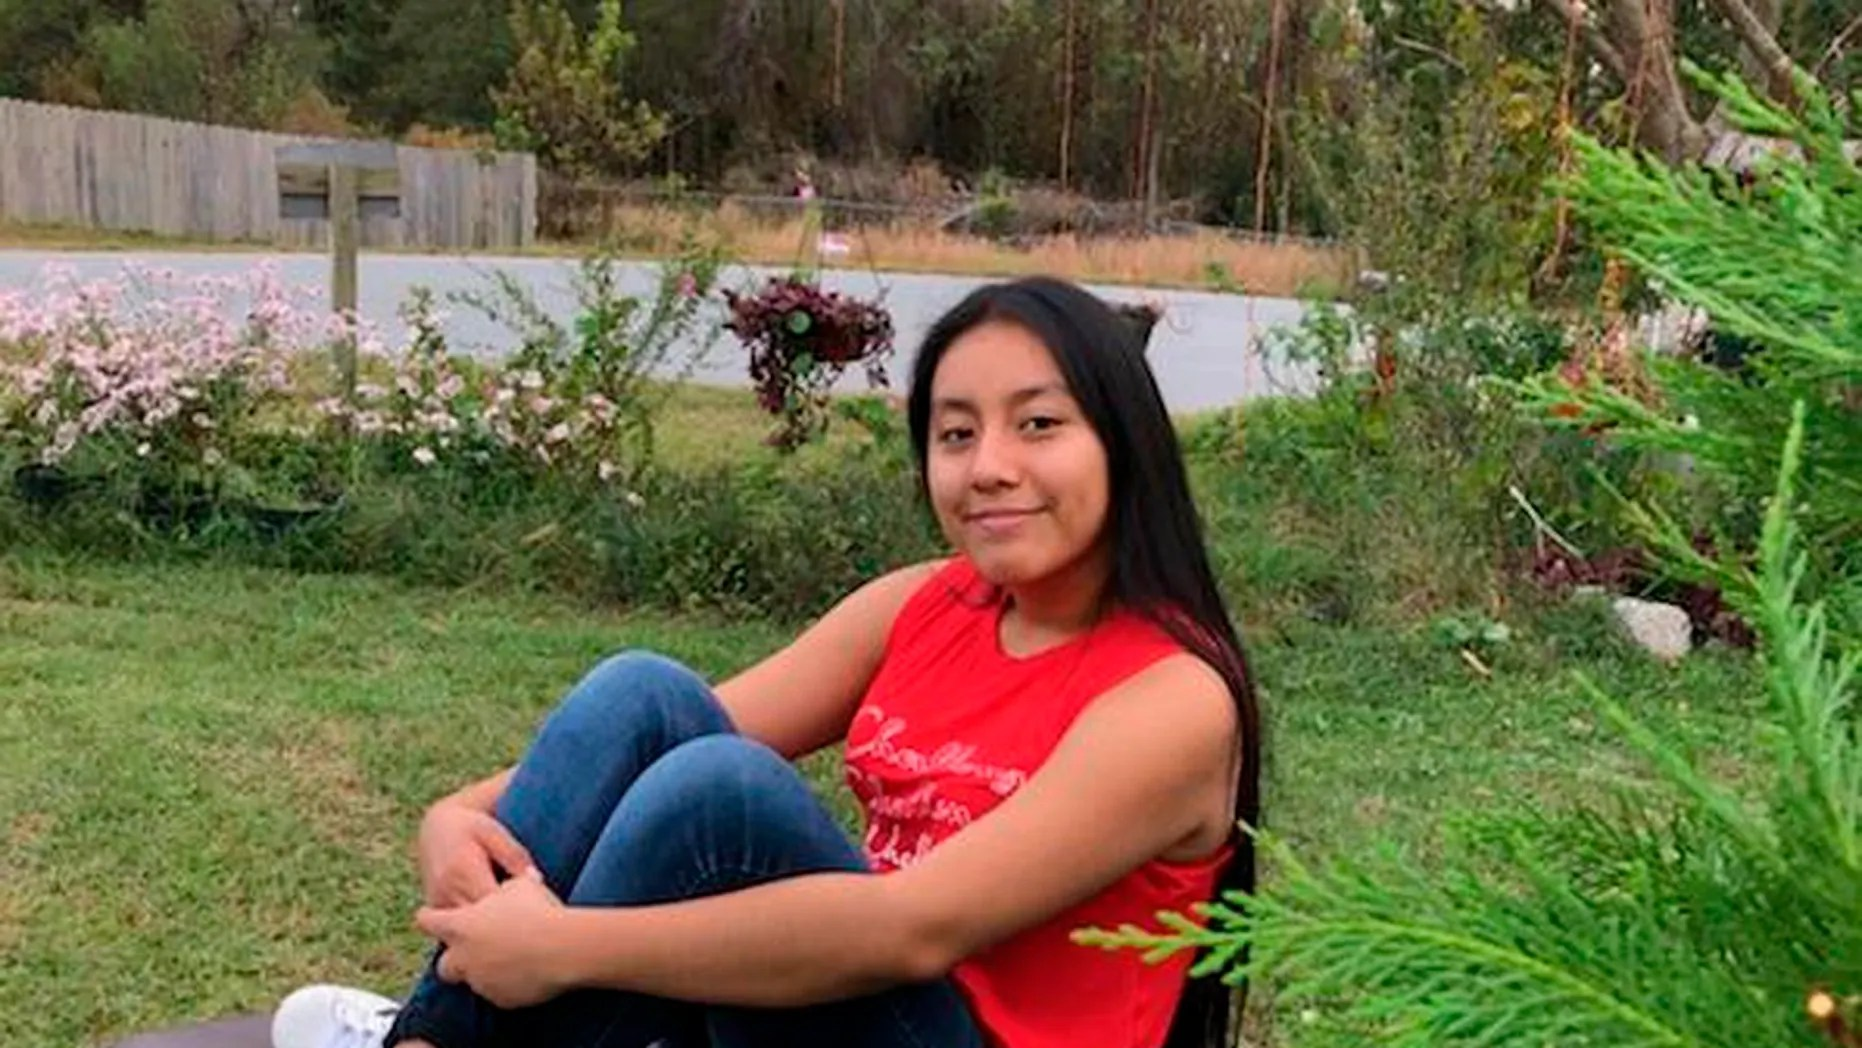 Hania Noelia Aguilar, the day before she went missing in Lumberton, N.C. Investigators believe a body found in North Carolina is Aguilar. (FBI via AP)